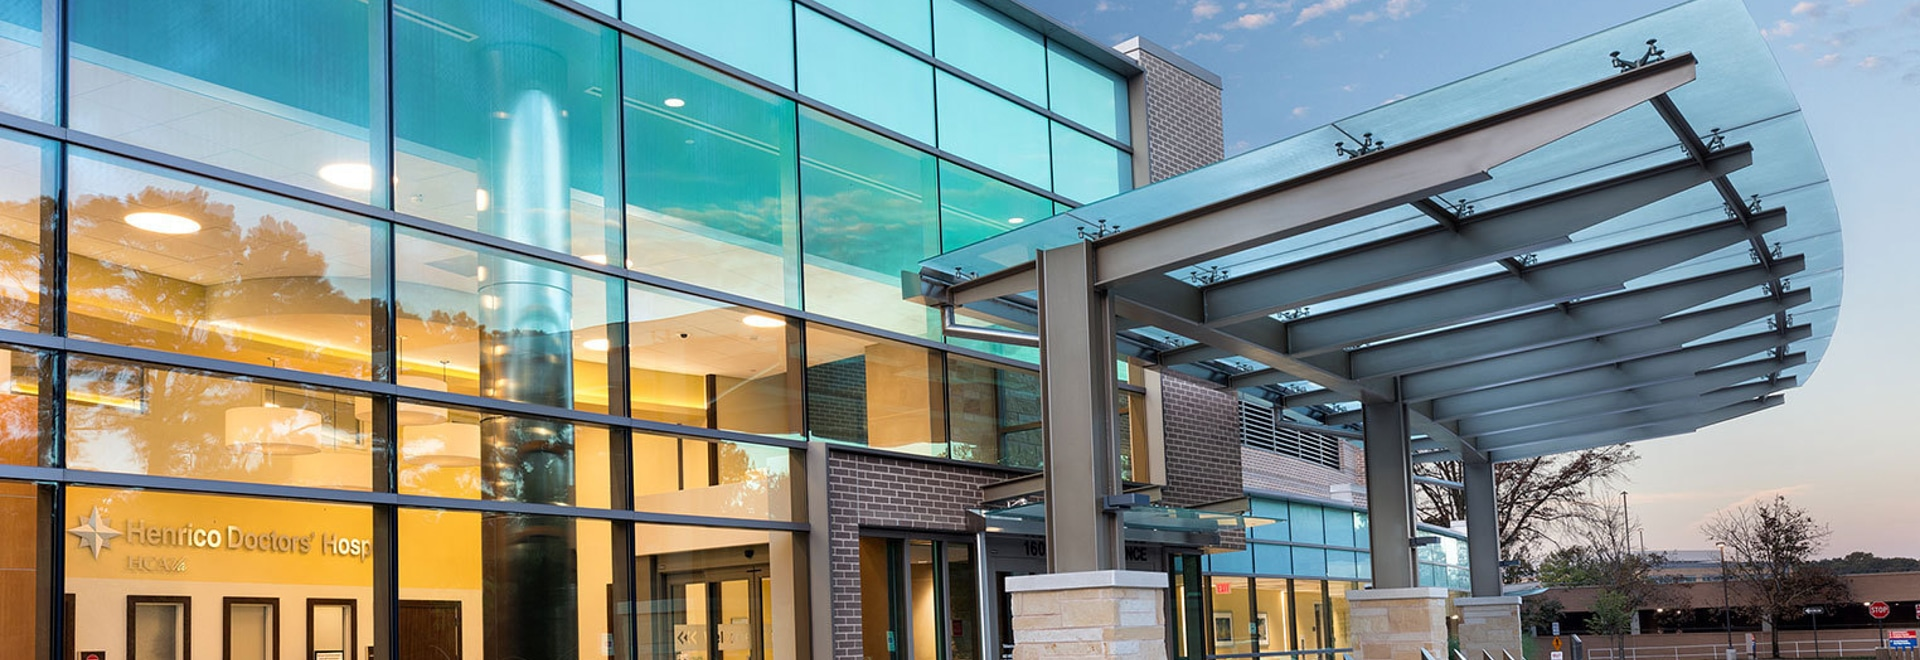 The hospital's new dedicated entrance and lobby for women's services. | Photo courtesy of Gresham, Smith and Partners